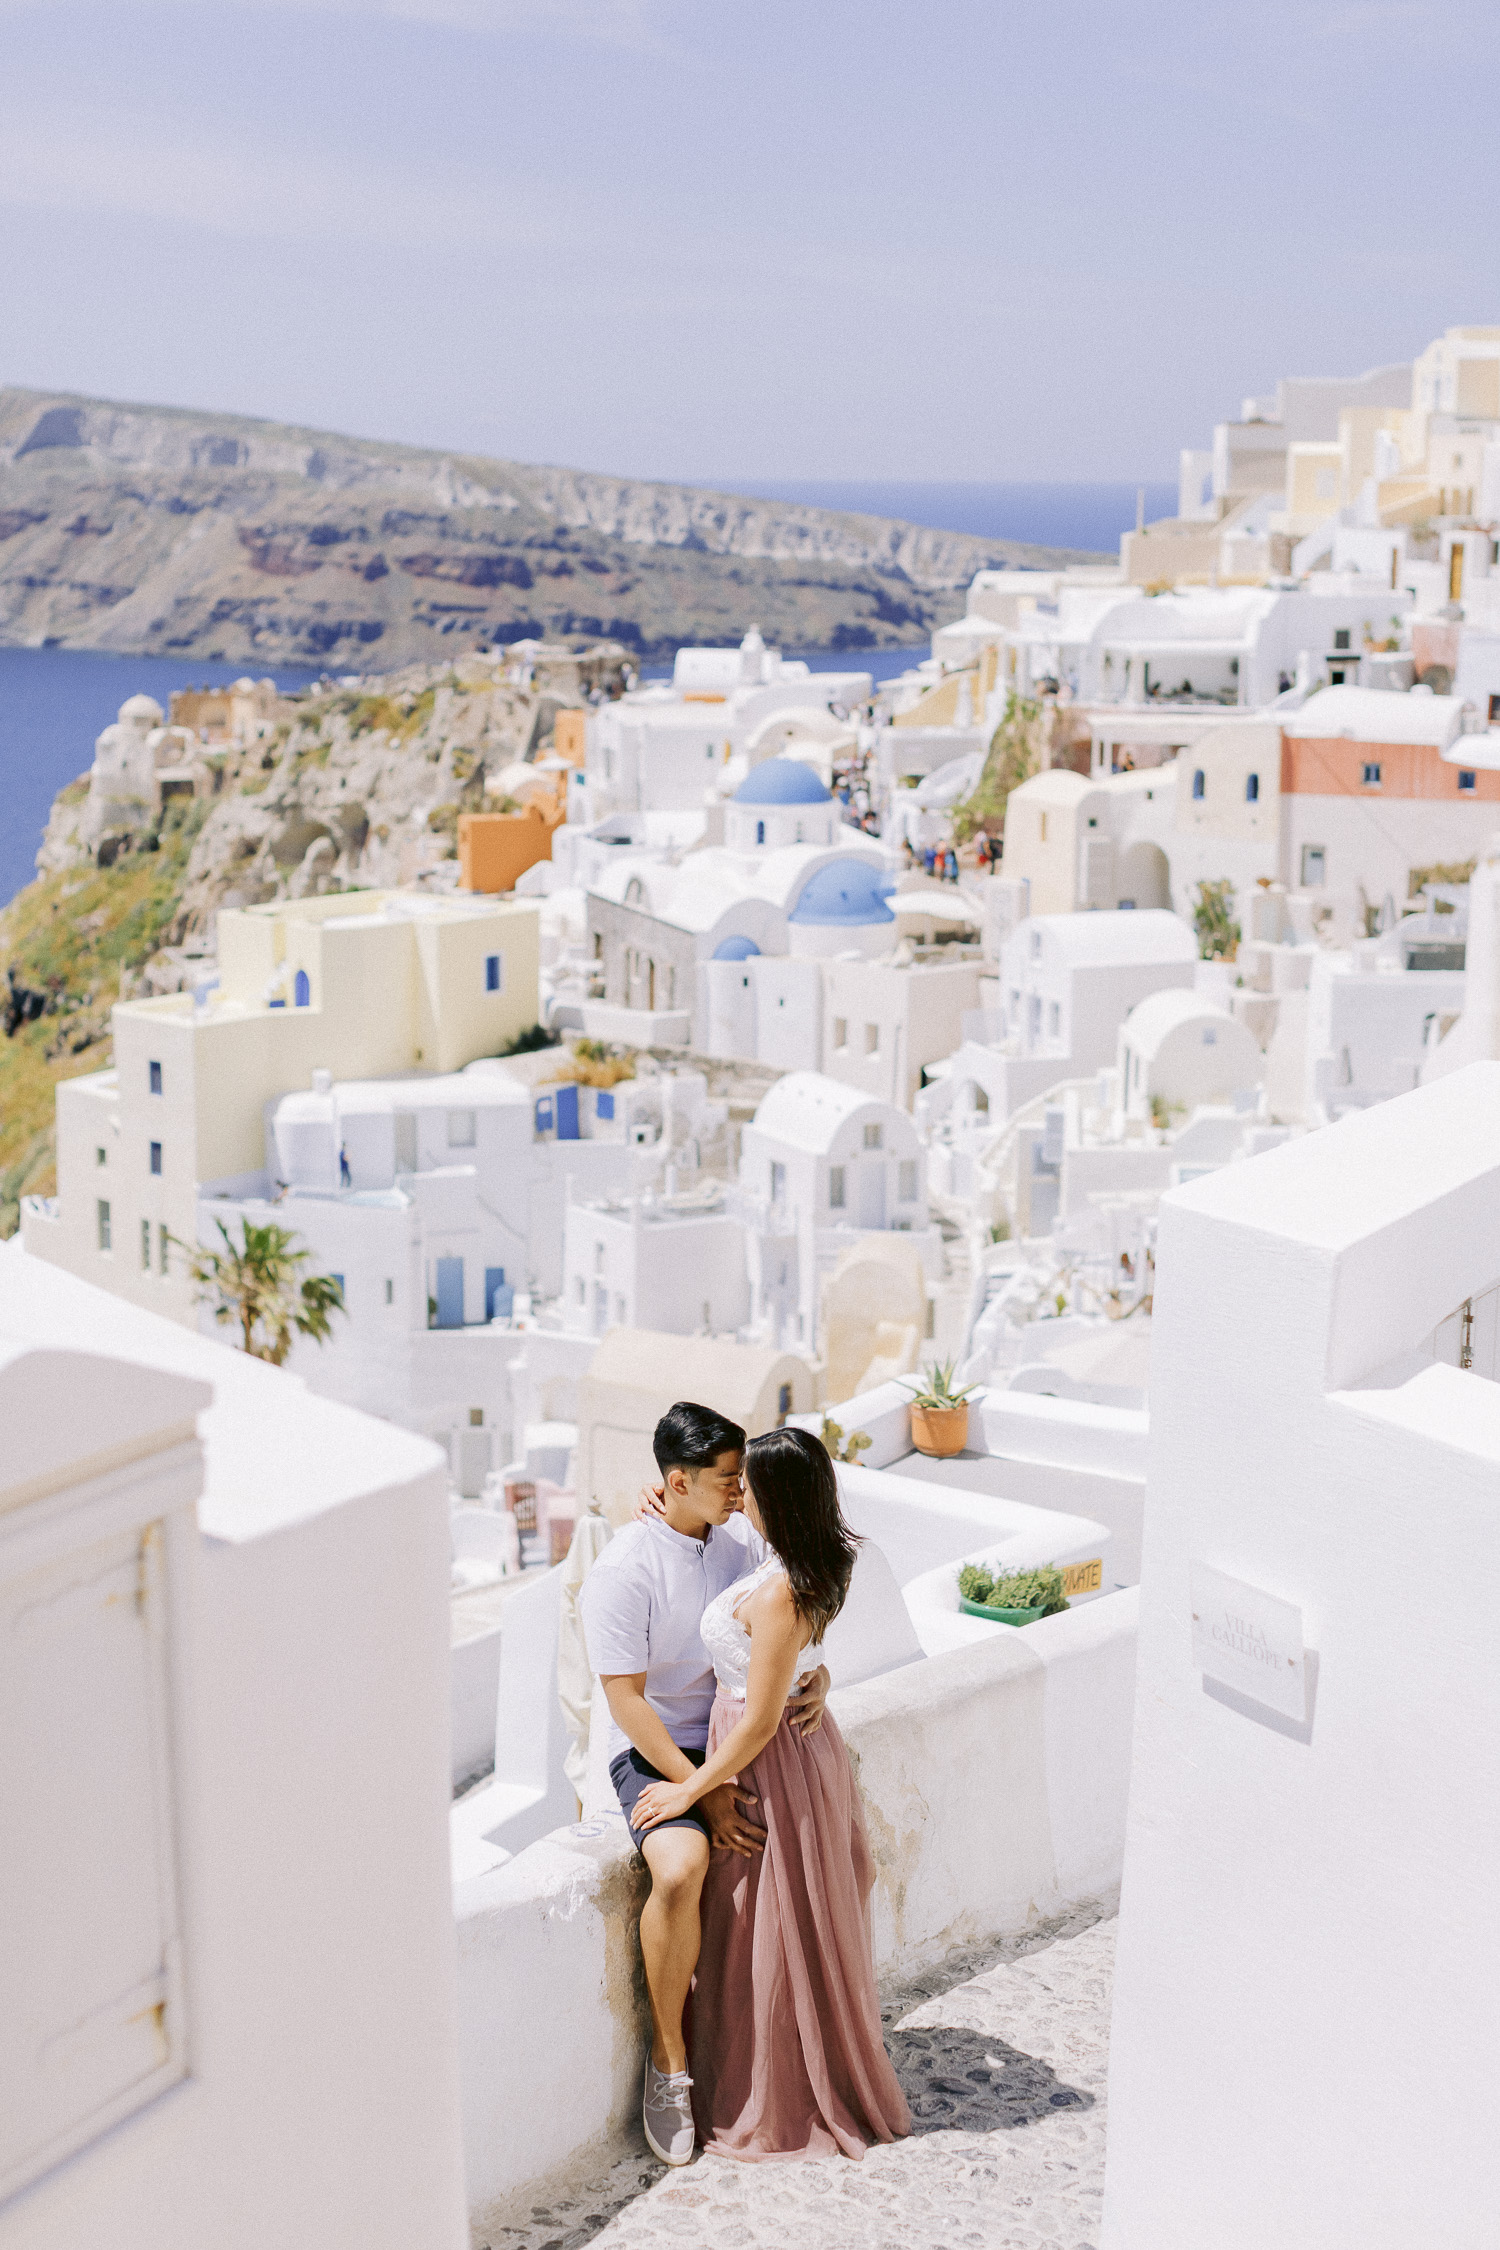 Strolling around Santorini and capture this amazing couple's engagement shoot